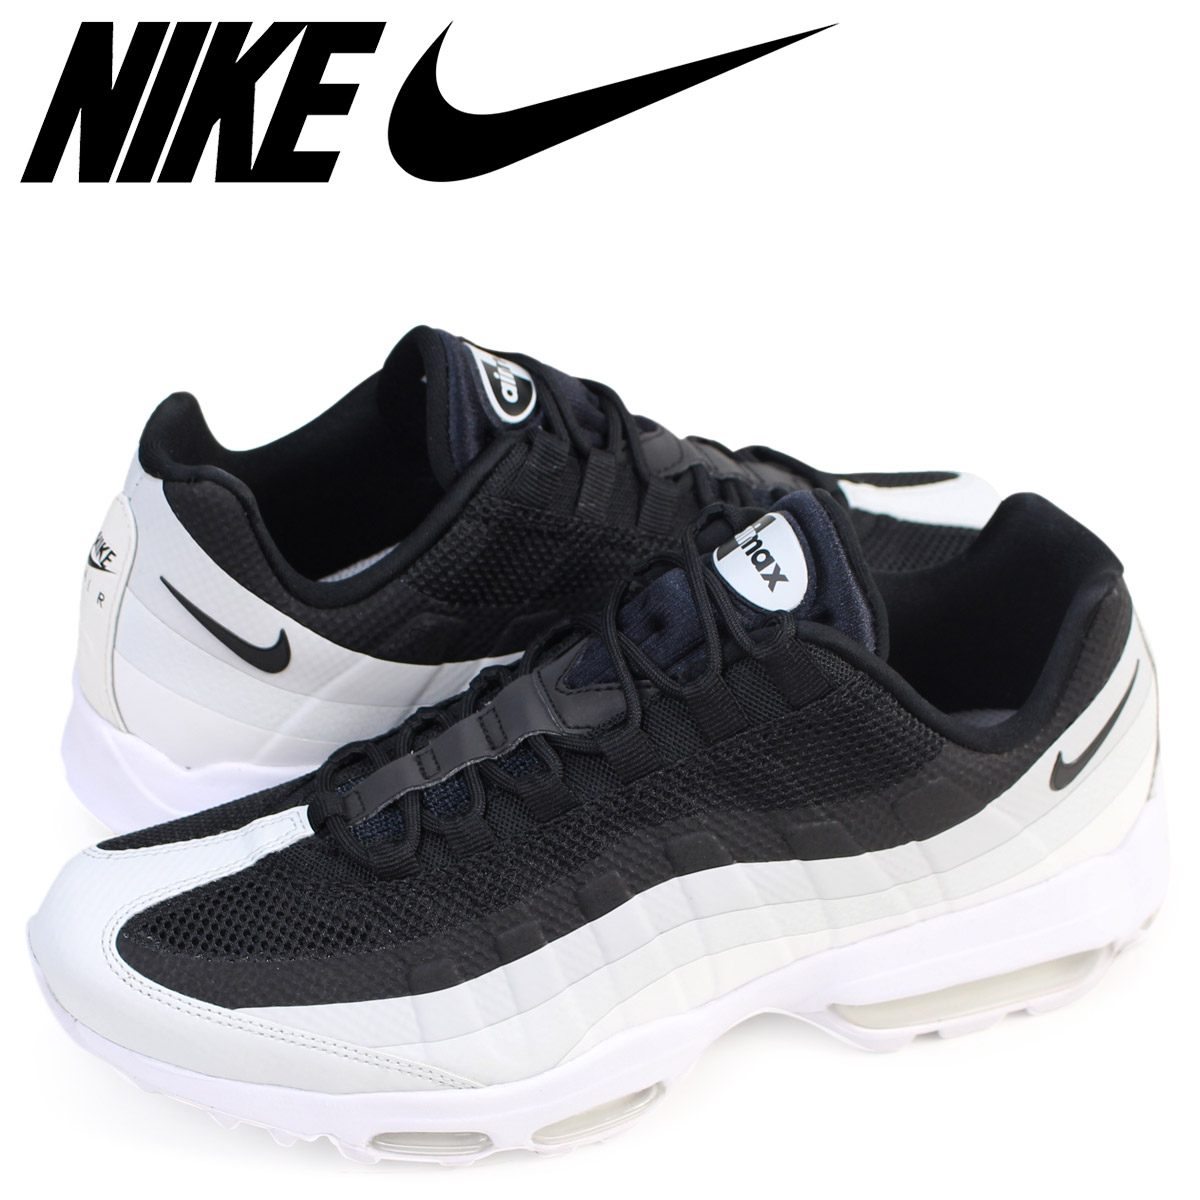 NIKE Kie Ney AMAX 95 sneakers AIR MAX 95 ULTRA ESSENTIAL men ultra essential 857,910 009 shoes black 714 additional arrival] [177]